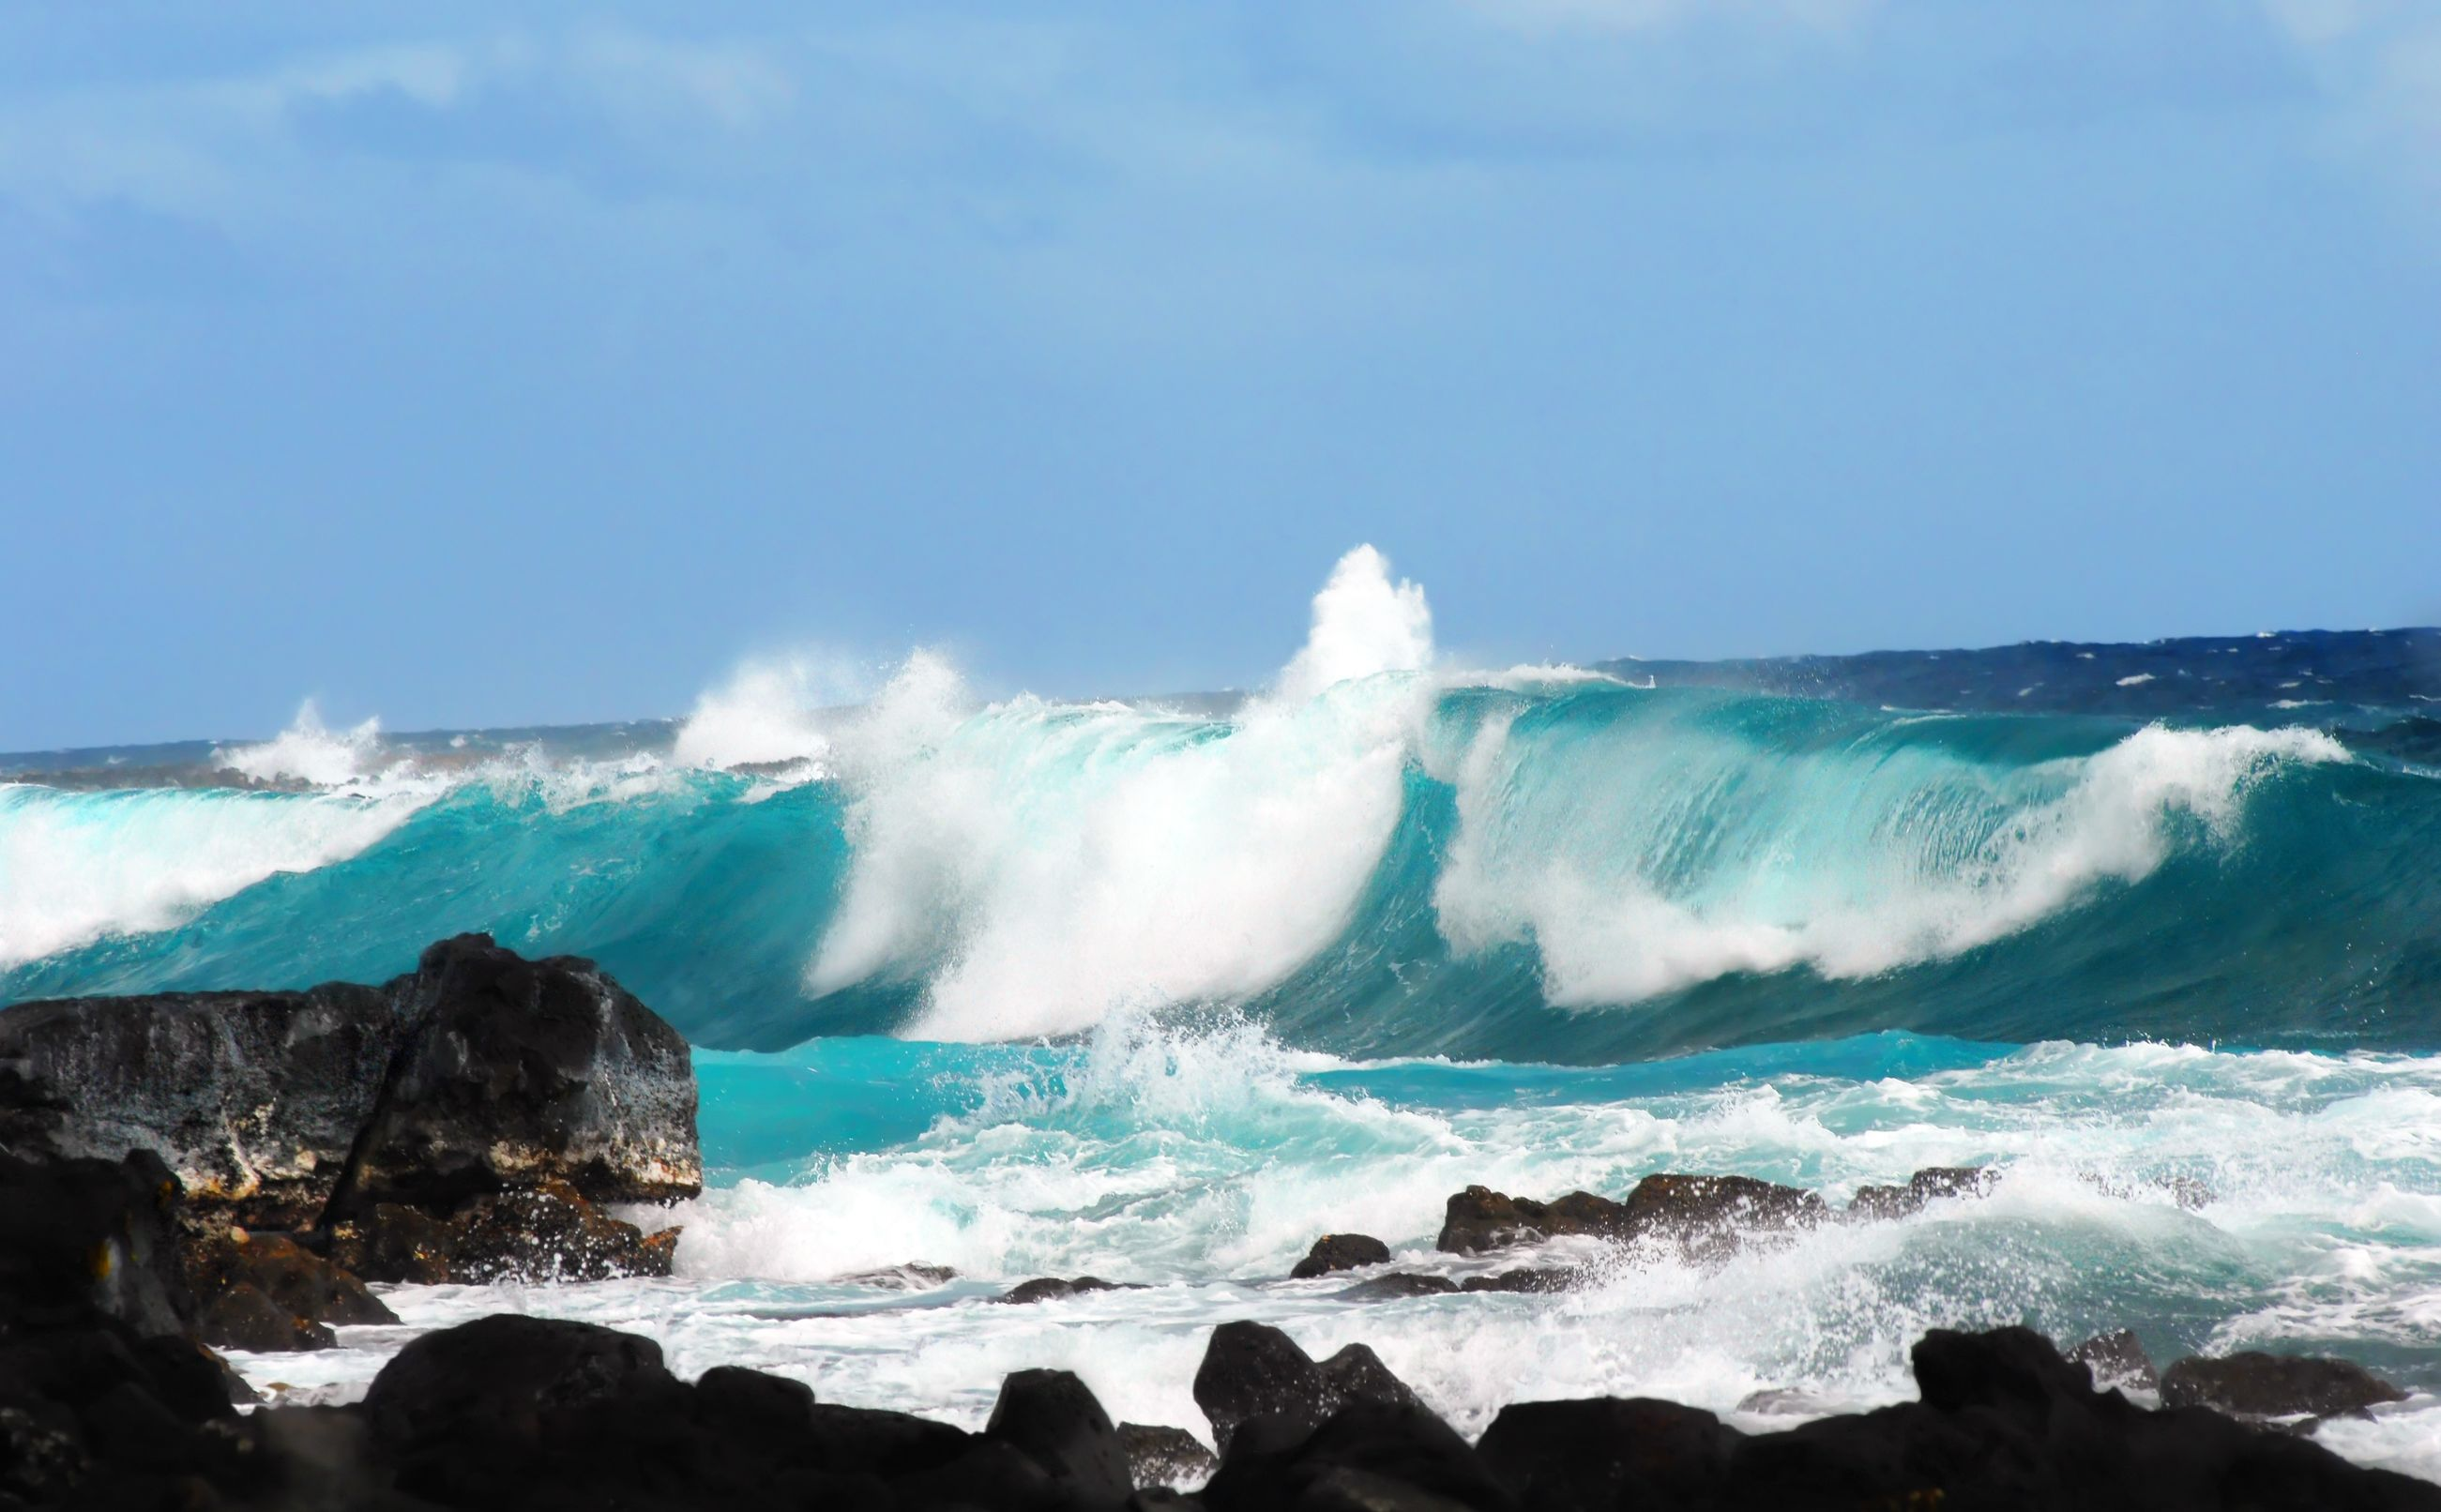 australia waves crashing rocks 123rf